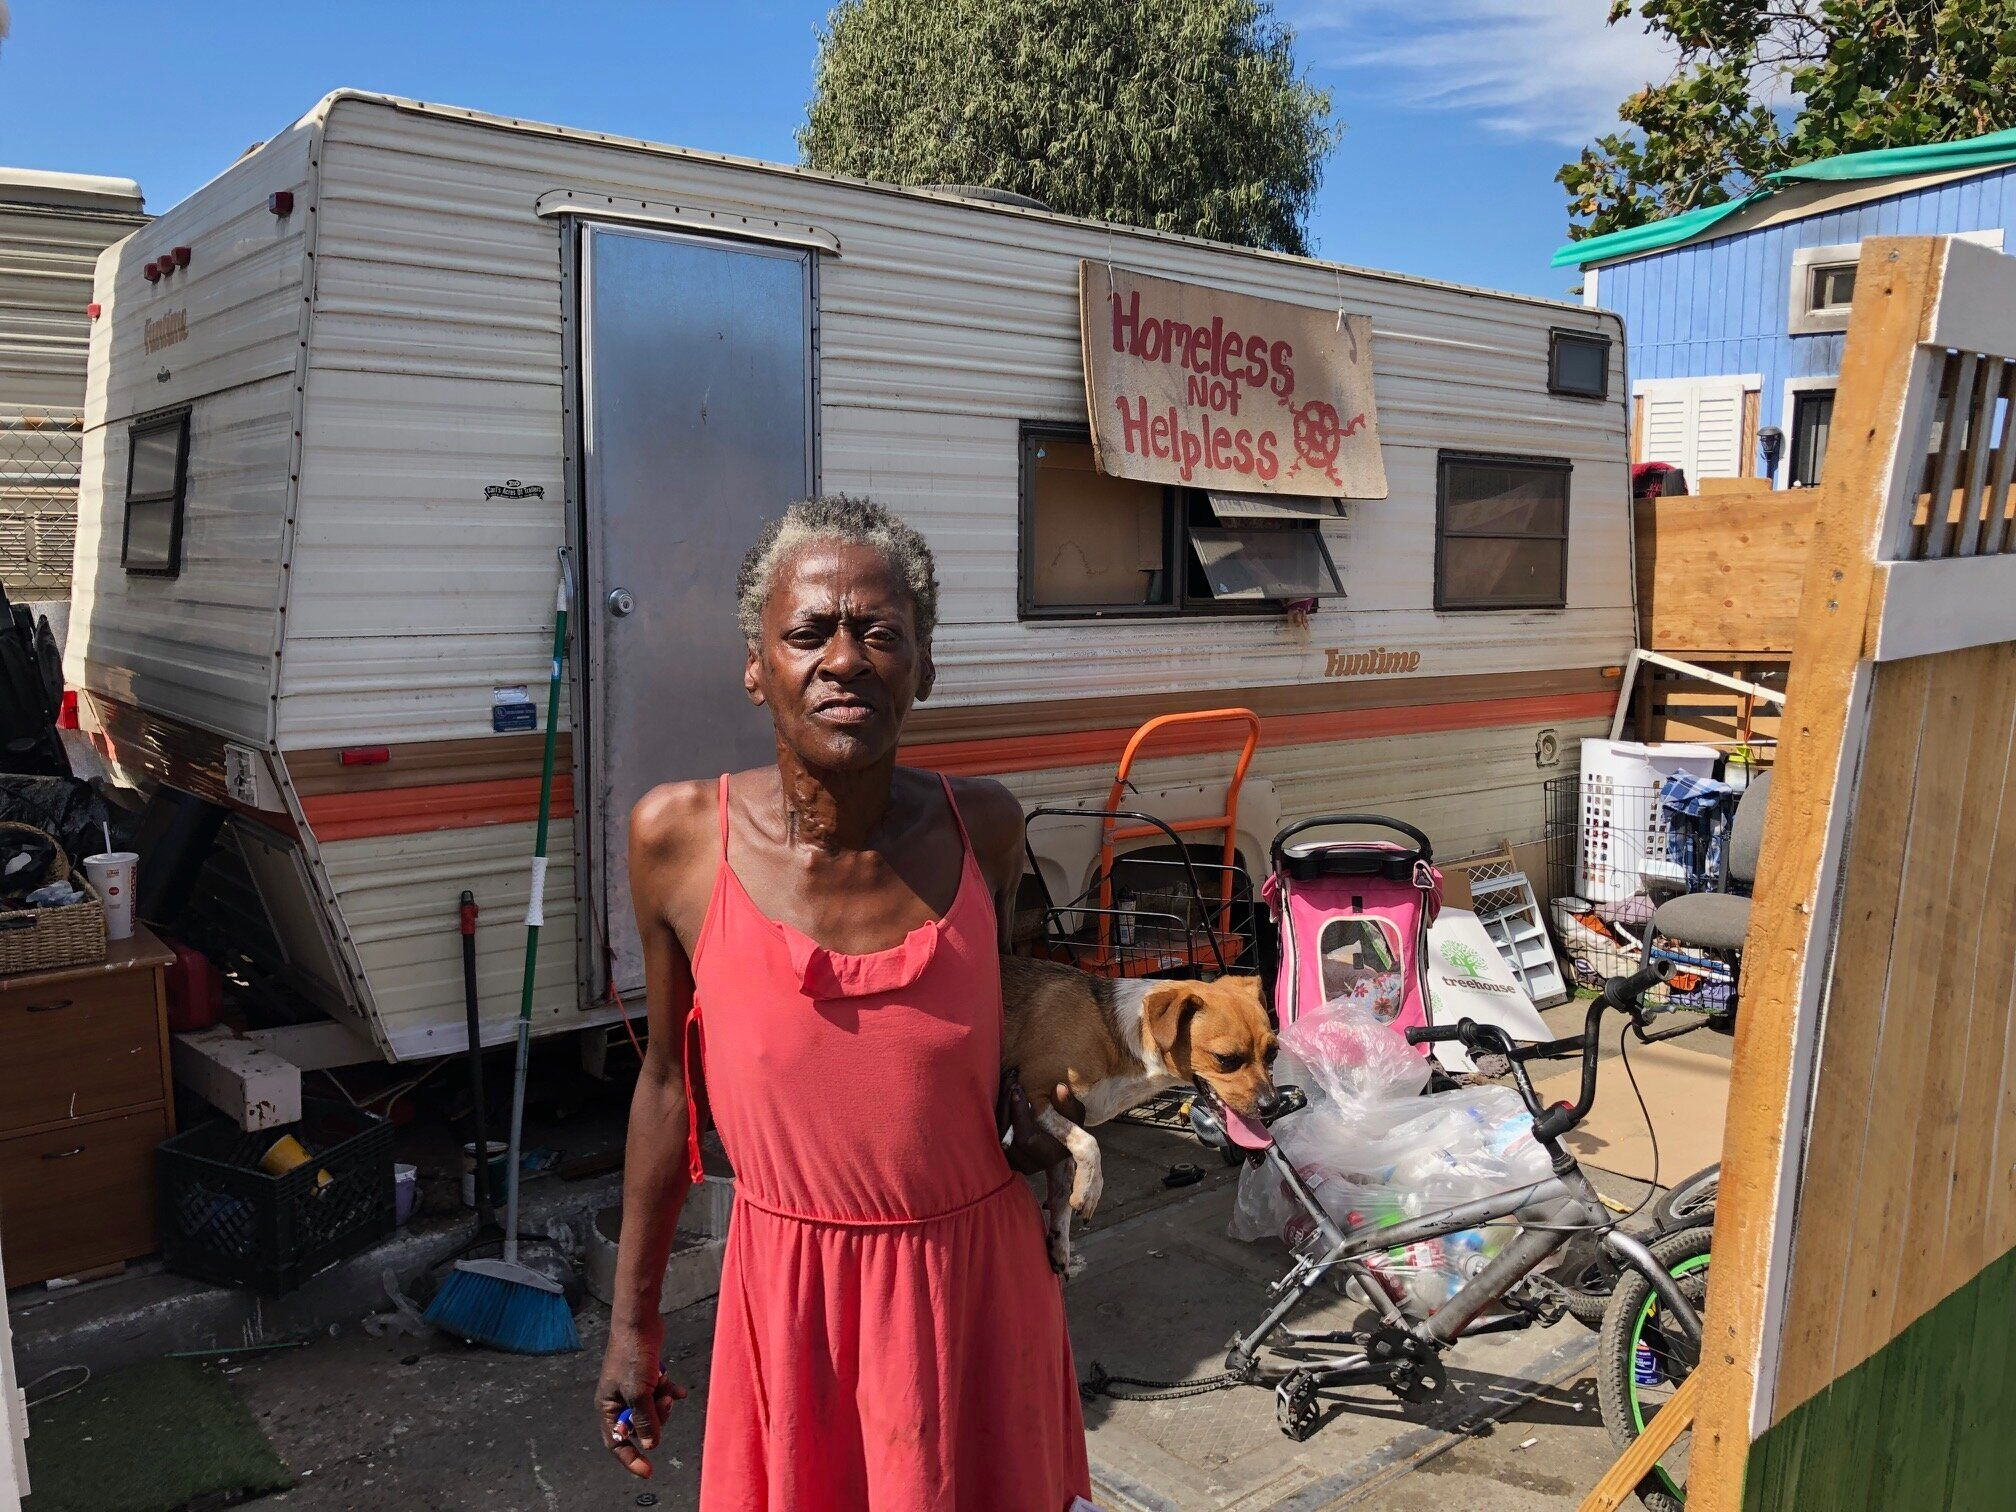 """Claudette Smith stands in front of her mobile home in an Oakland homeless encampment, with a sign that reads: """"Homeless not h"""